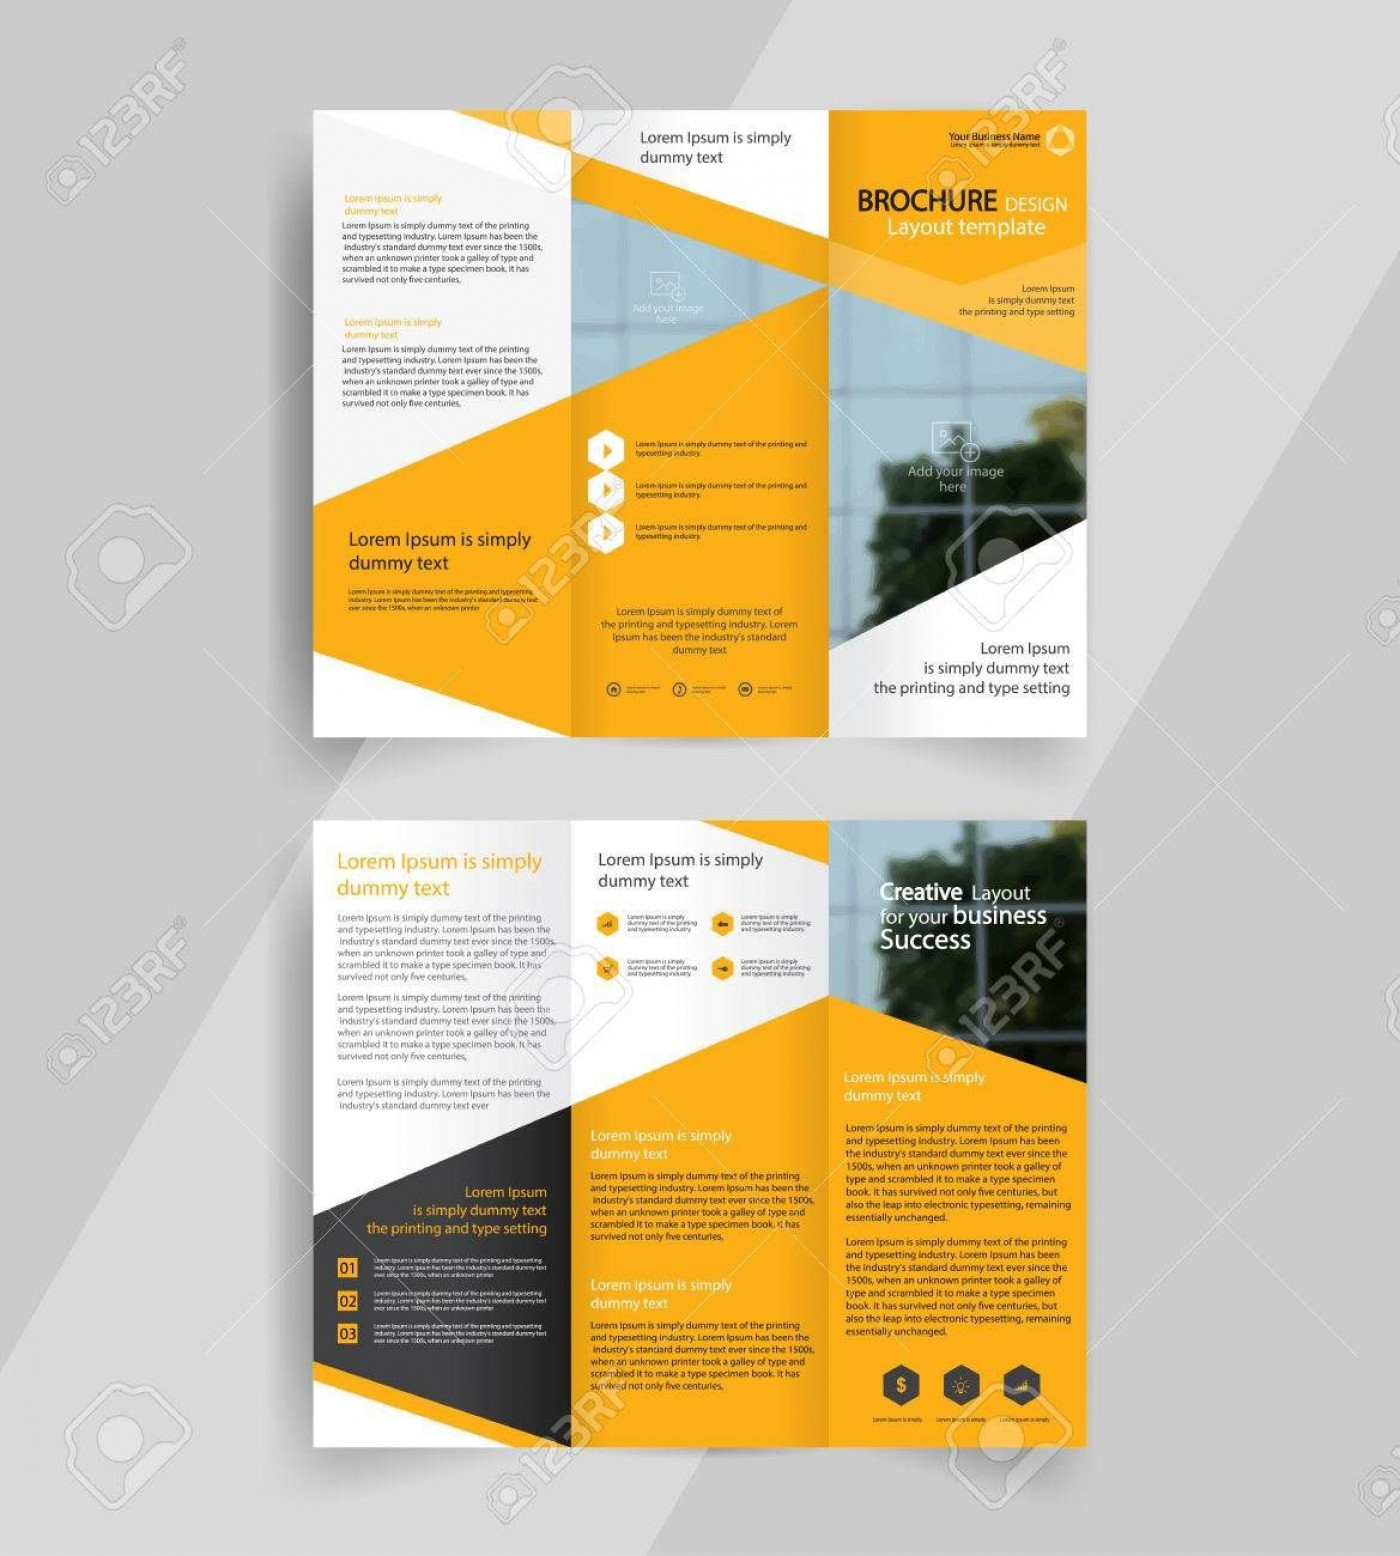 000 Imposing 3 Fold Brochure Template Concept  For Free1400